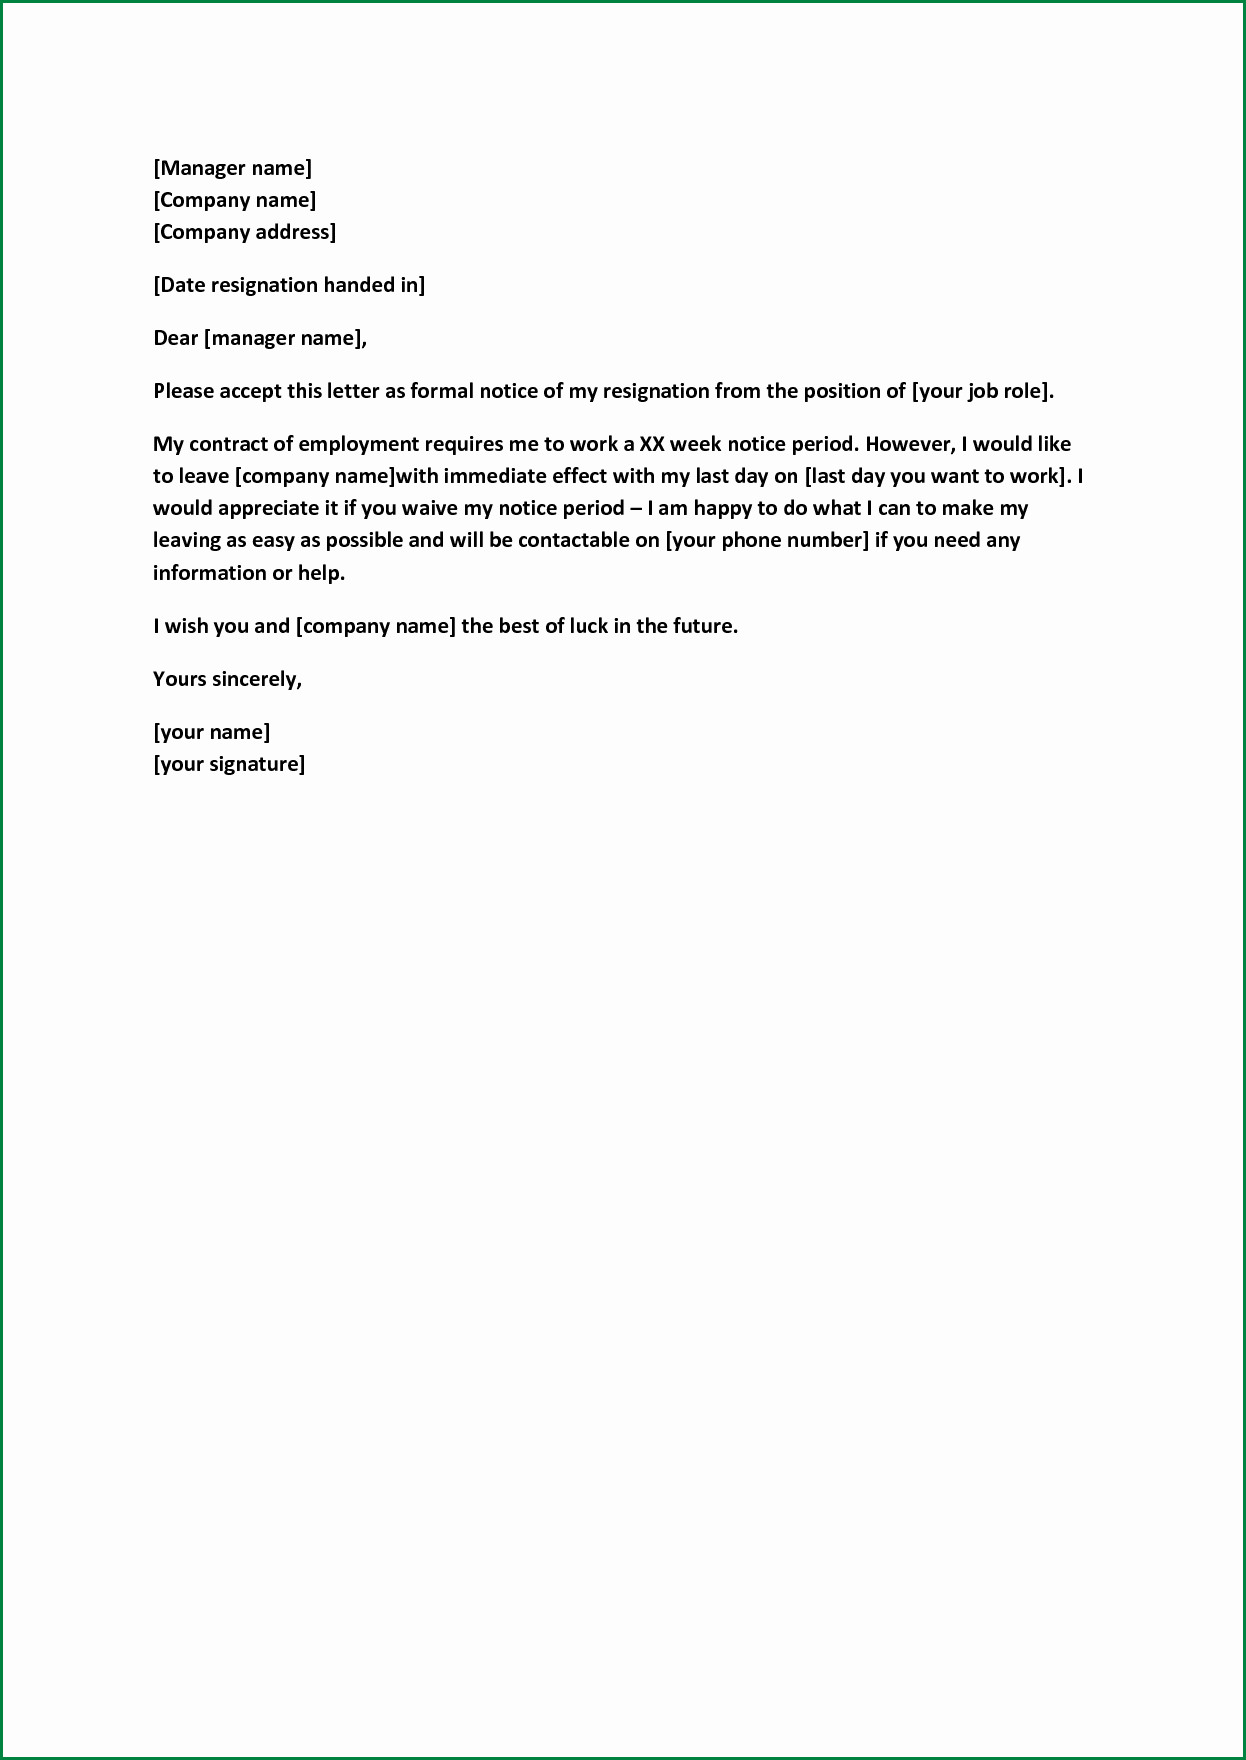 Formal Resign Letter Template Lovely formal Resignation Letter Sample with Notice Period